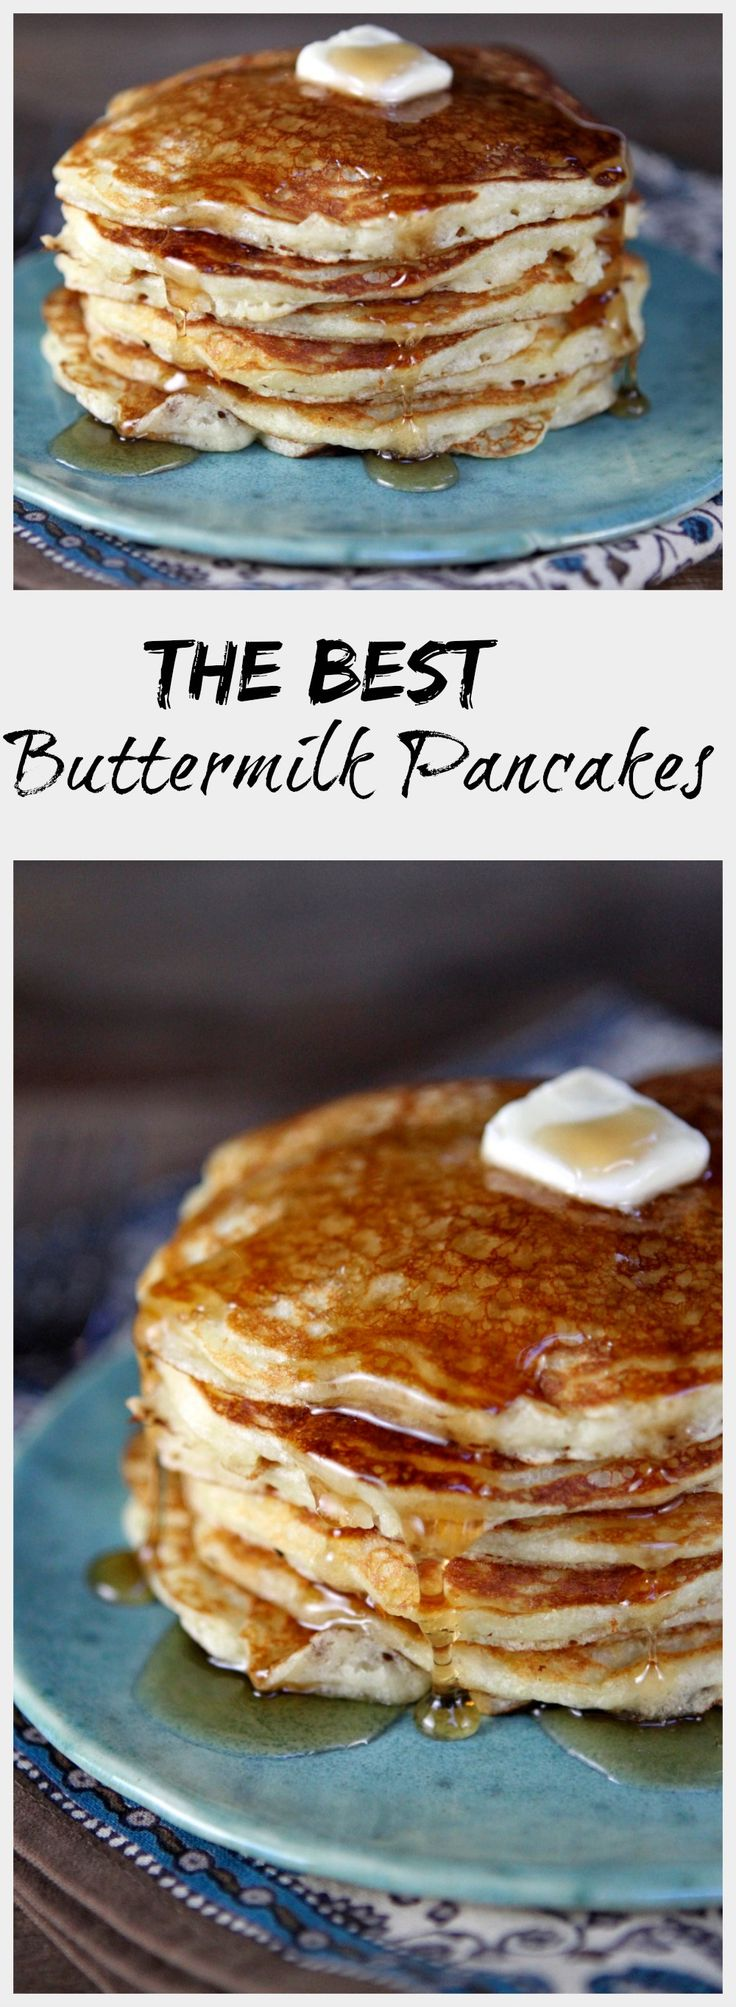 Lofty Buttermilk Pancakes - a little bit crispy on the outside and tender and tangy on the inside.